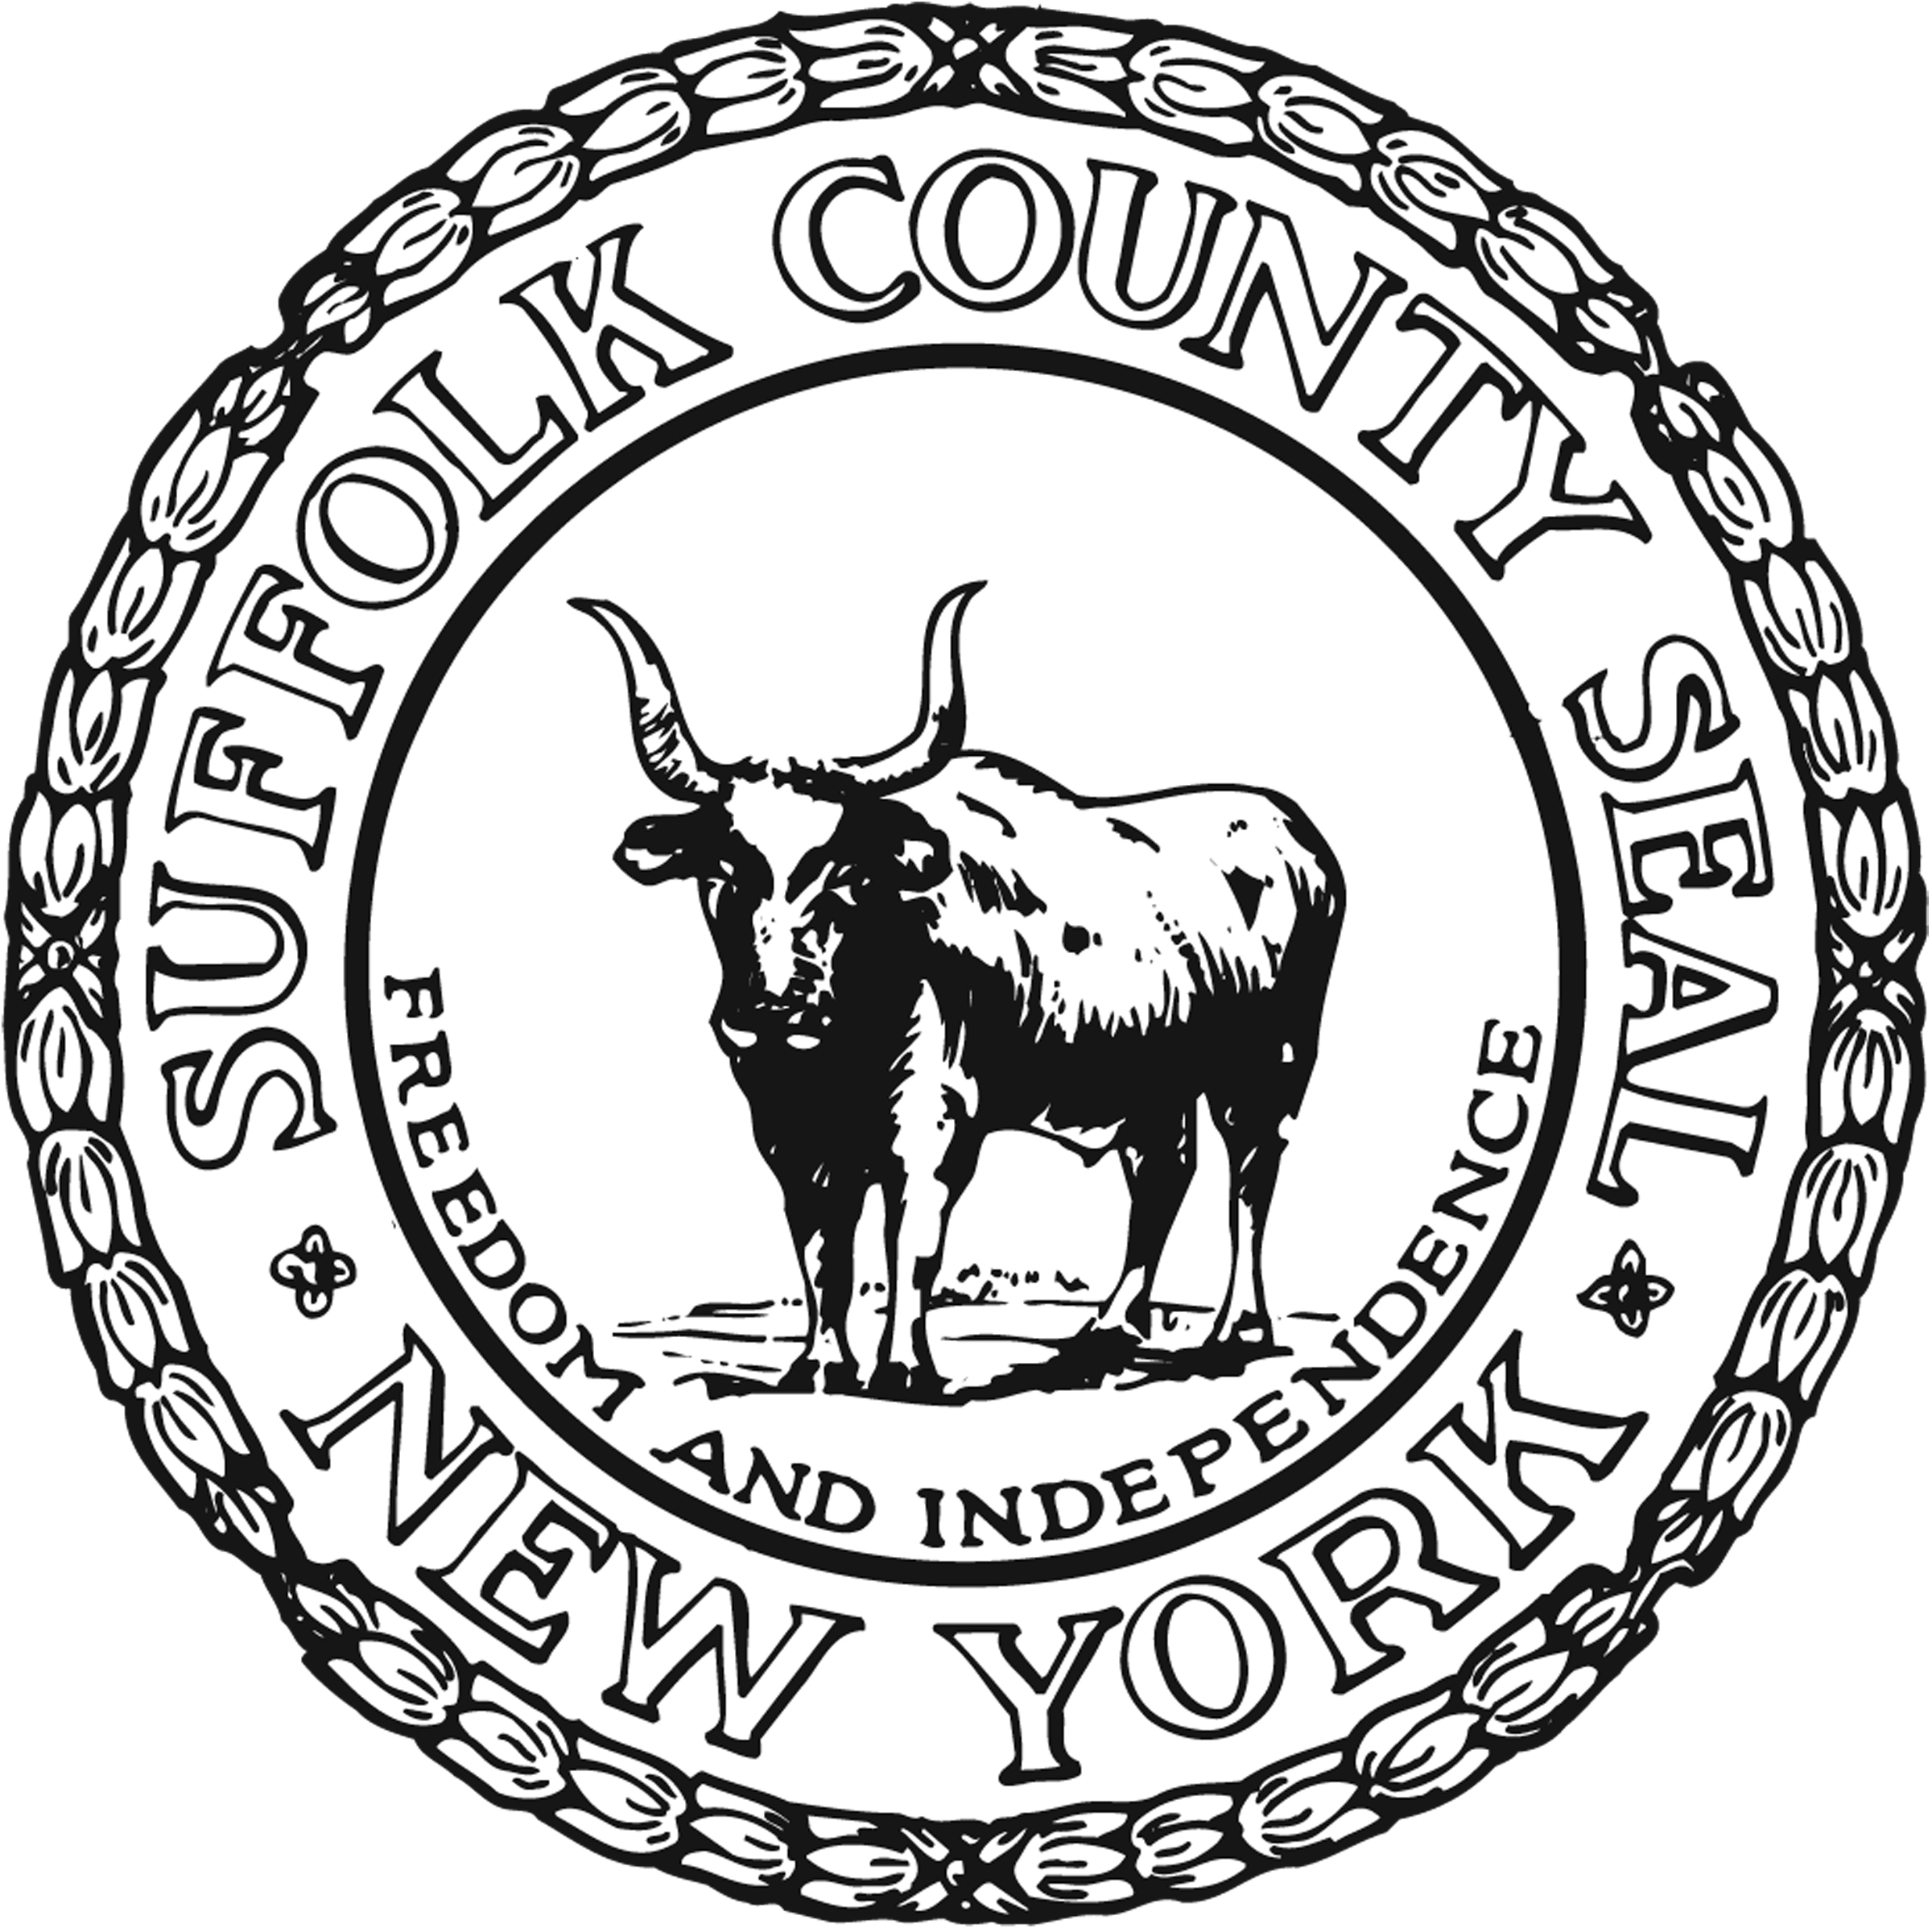 Organization logo of Suffolk County